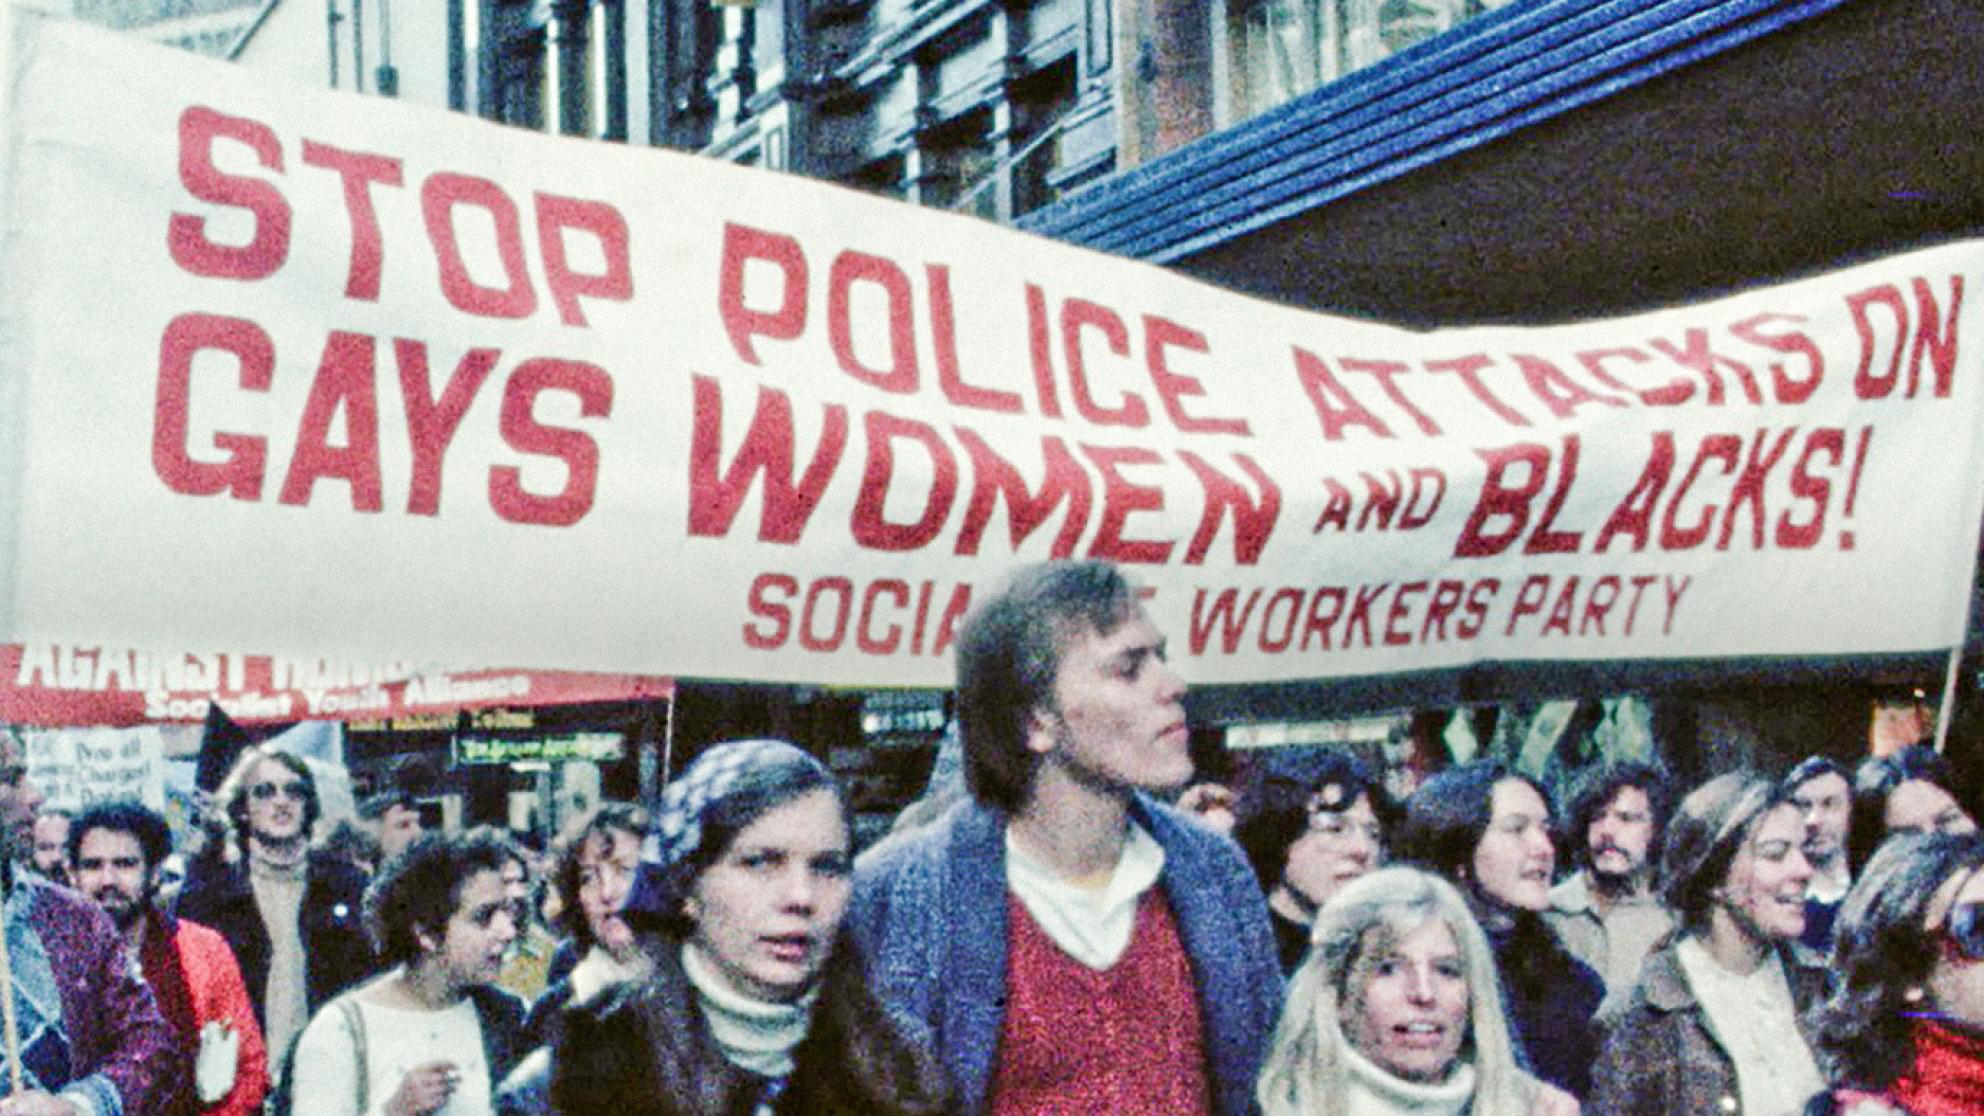 A Sydney protest march in the late 1970s with young people walking under a banner that reads 'Stop police attacks on gays, women and blacks!'